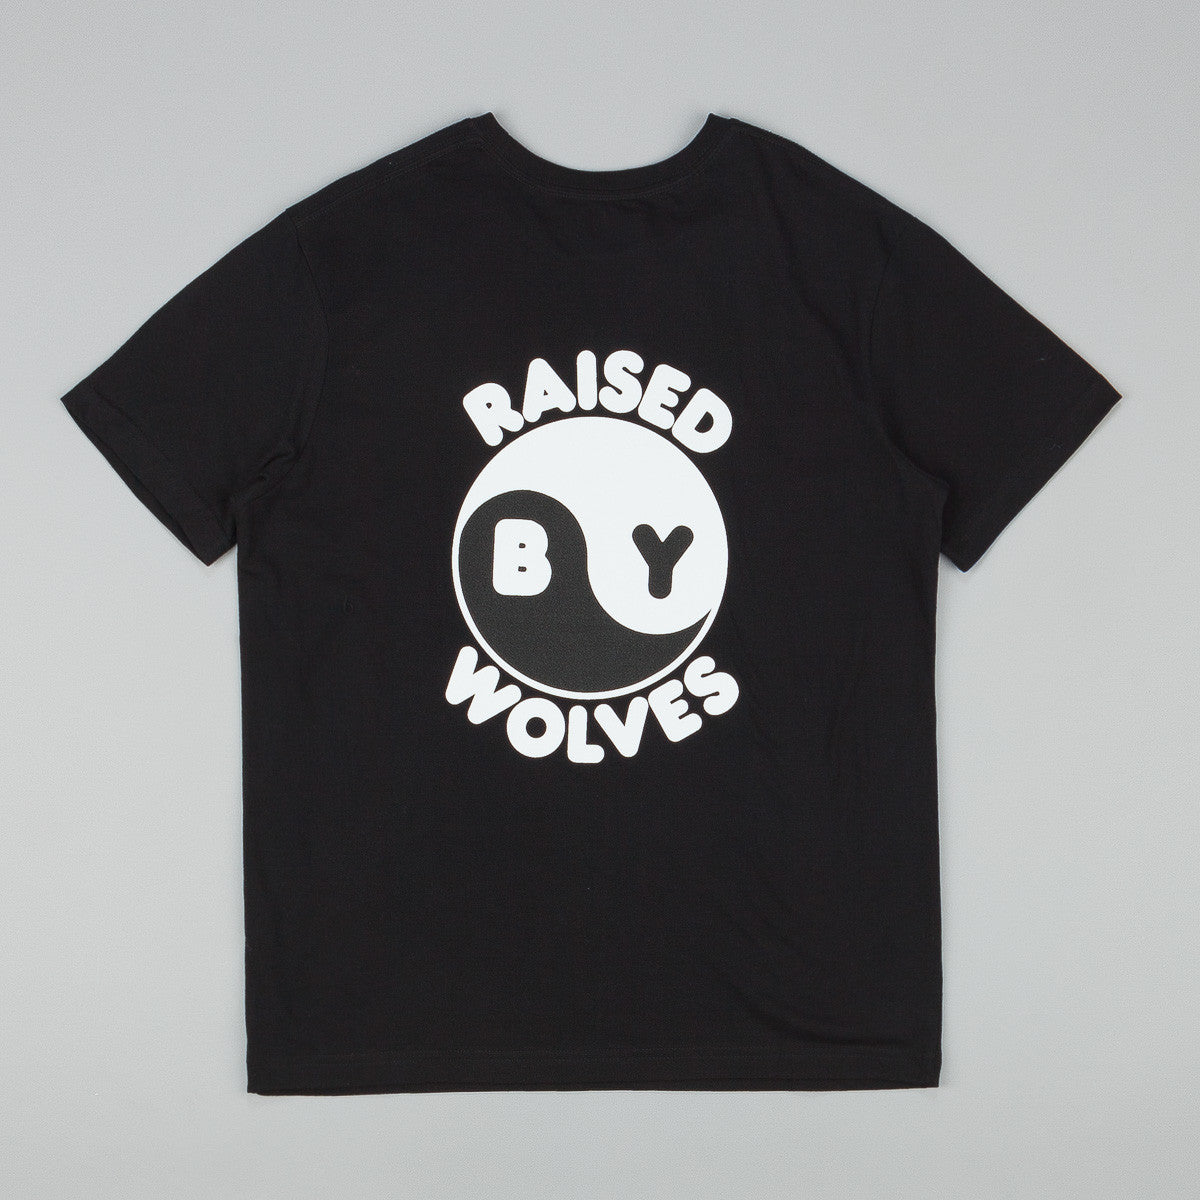 Raised By Wolves Ferg-Yang T-Shirt - Black